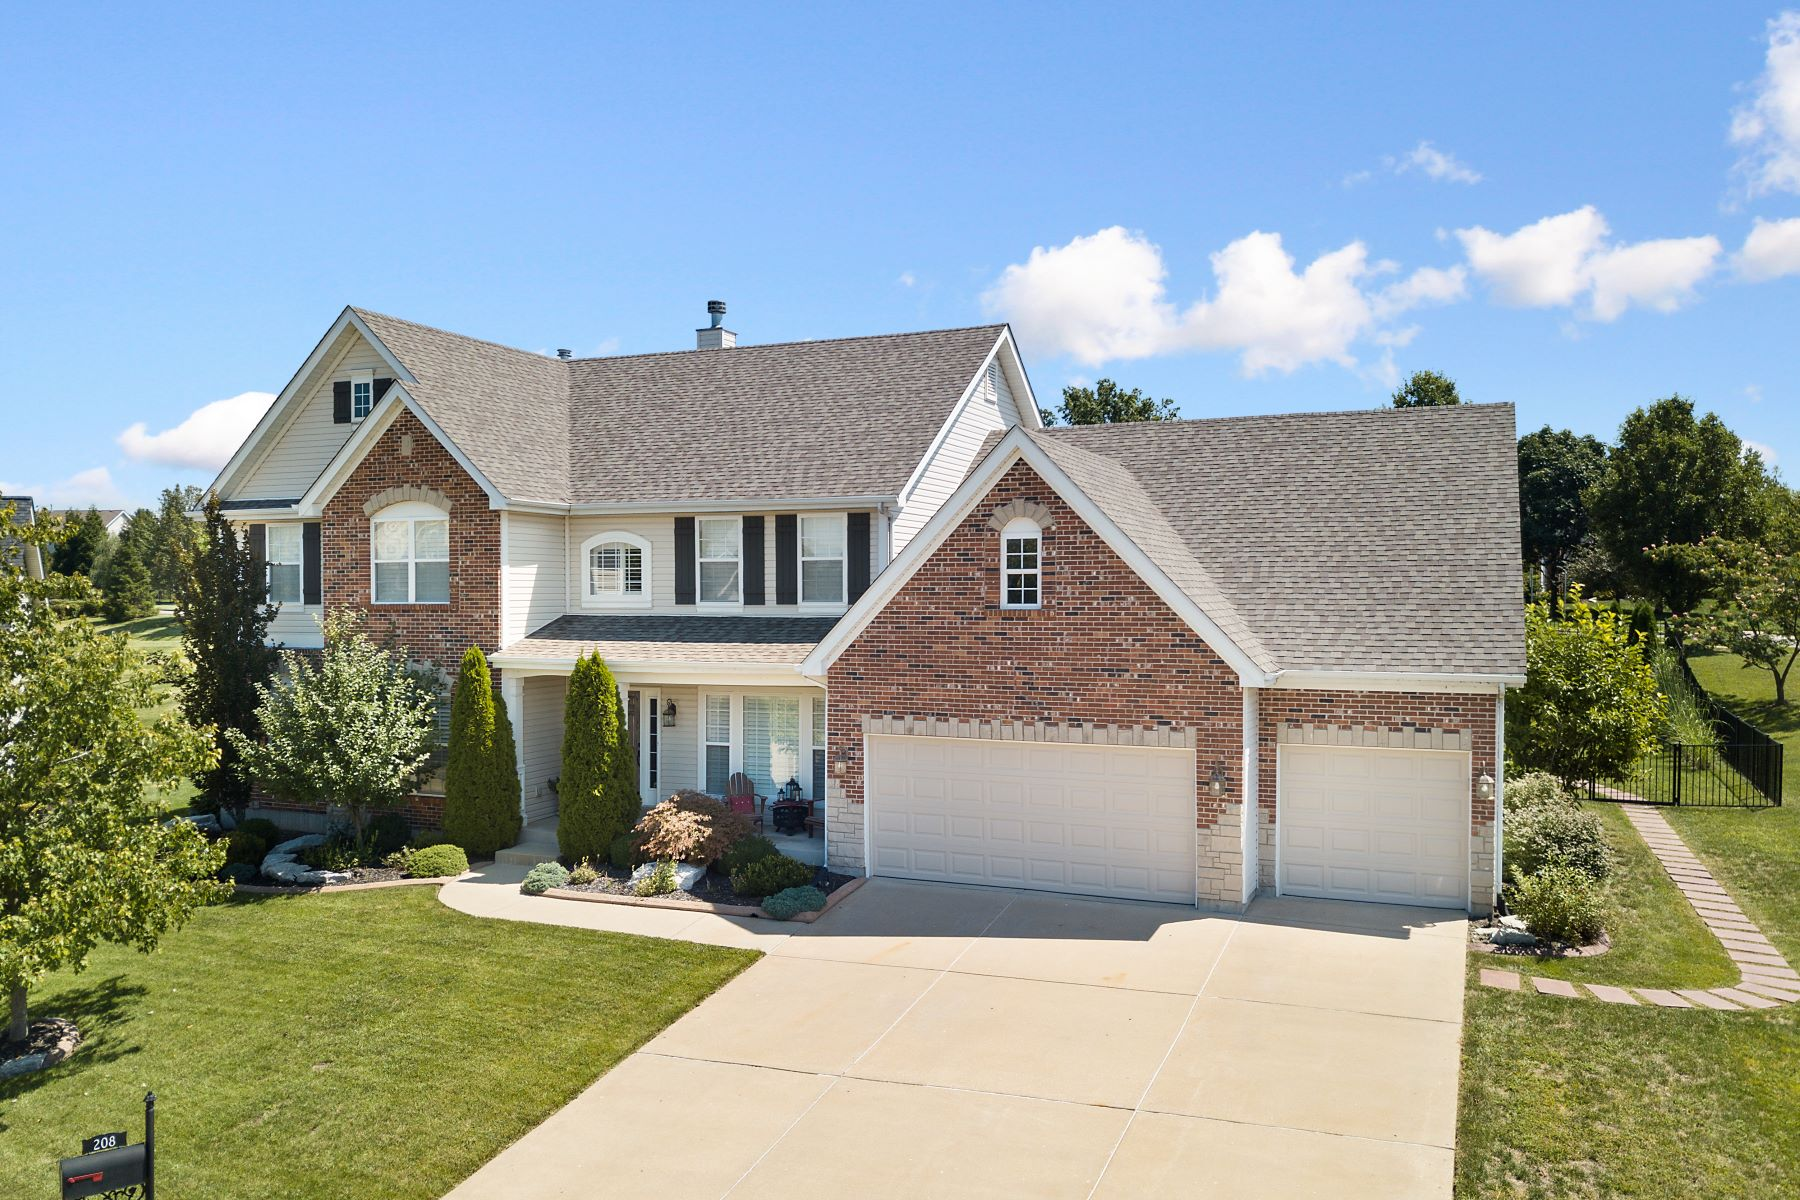 Single Family Homes for Sale at Gorgeously Maintained Wildwood Two Story 208 Spyglass Hill Drive Wildwood, Missouri 63040 United States